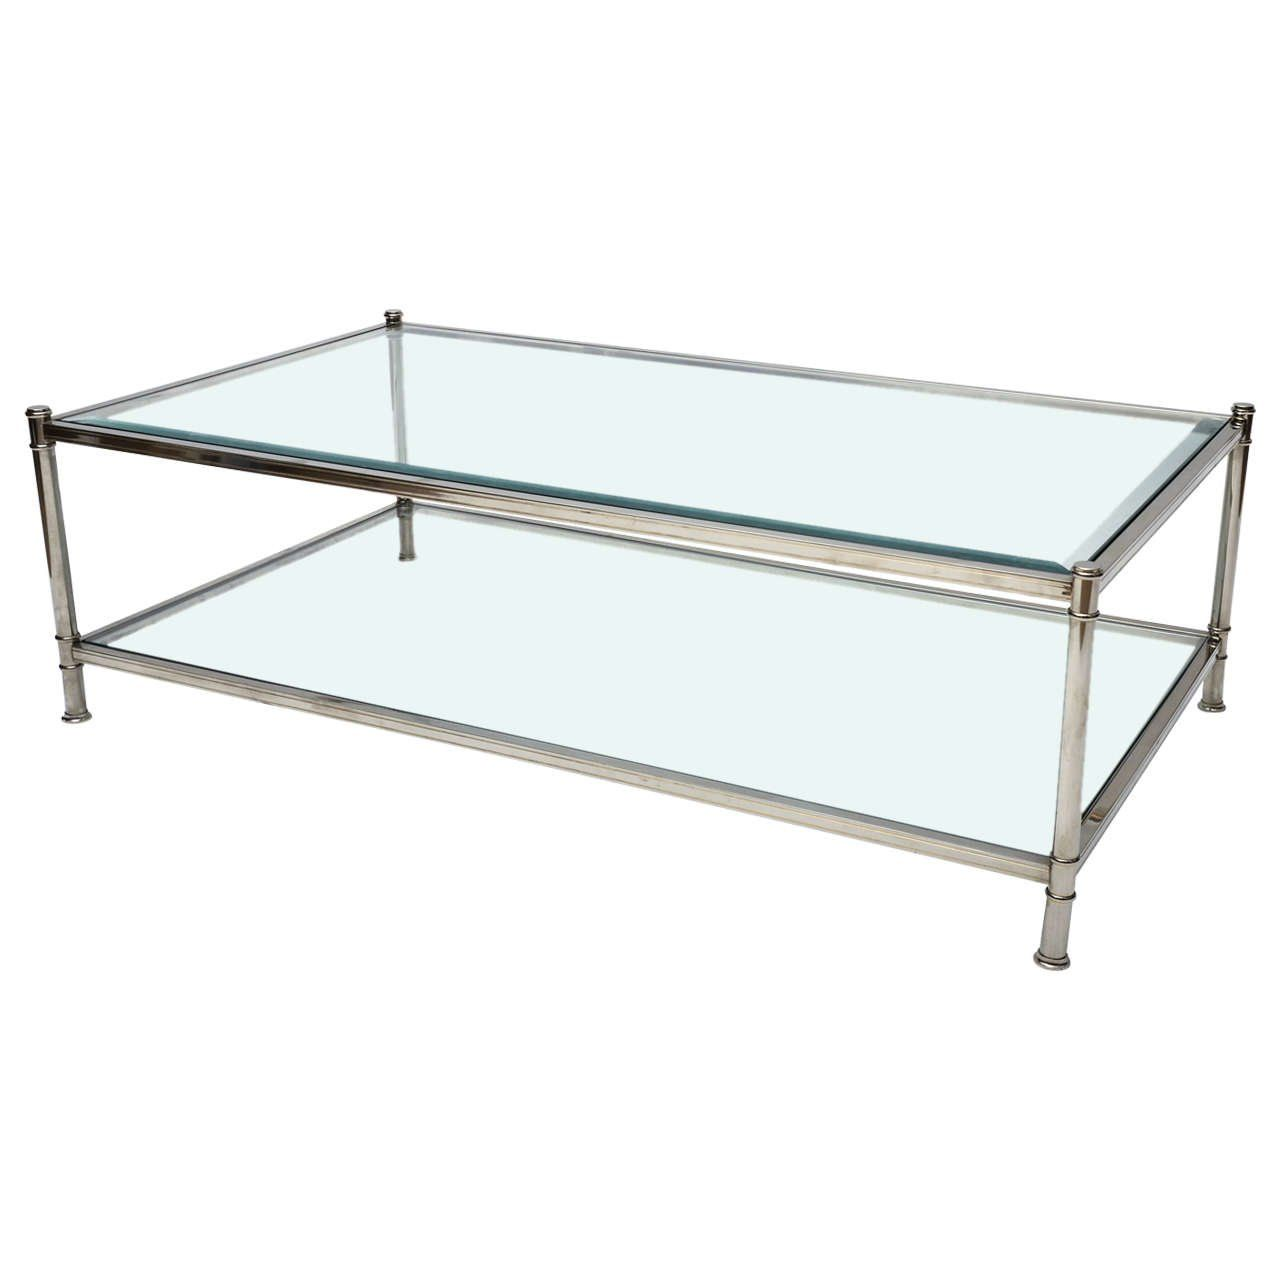 Mid Century Modern French Chrome And Glass Two Tier Coffee Table In 2021 Coffee Table Mid Century Coffee Table Coffee Table Vintage [ 1280 x 1280 Pixel ]